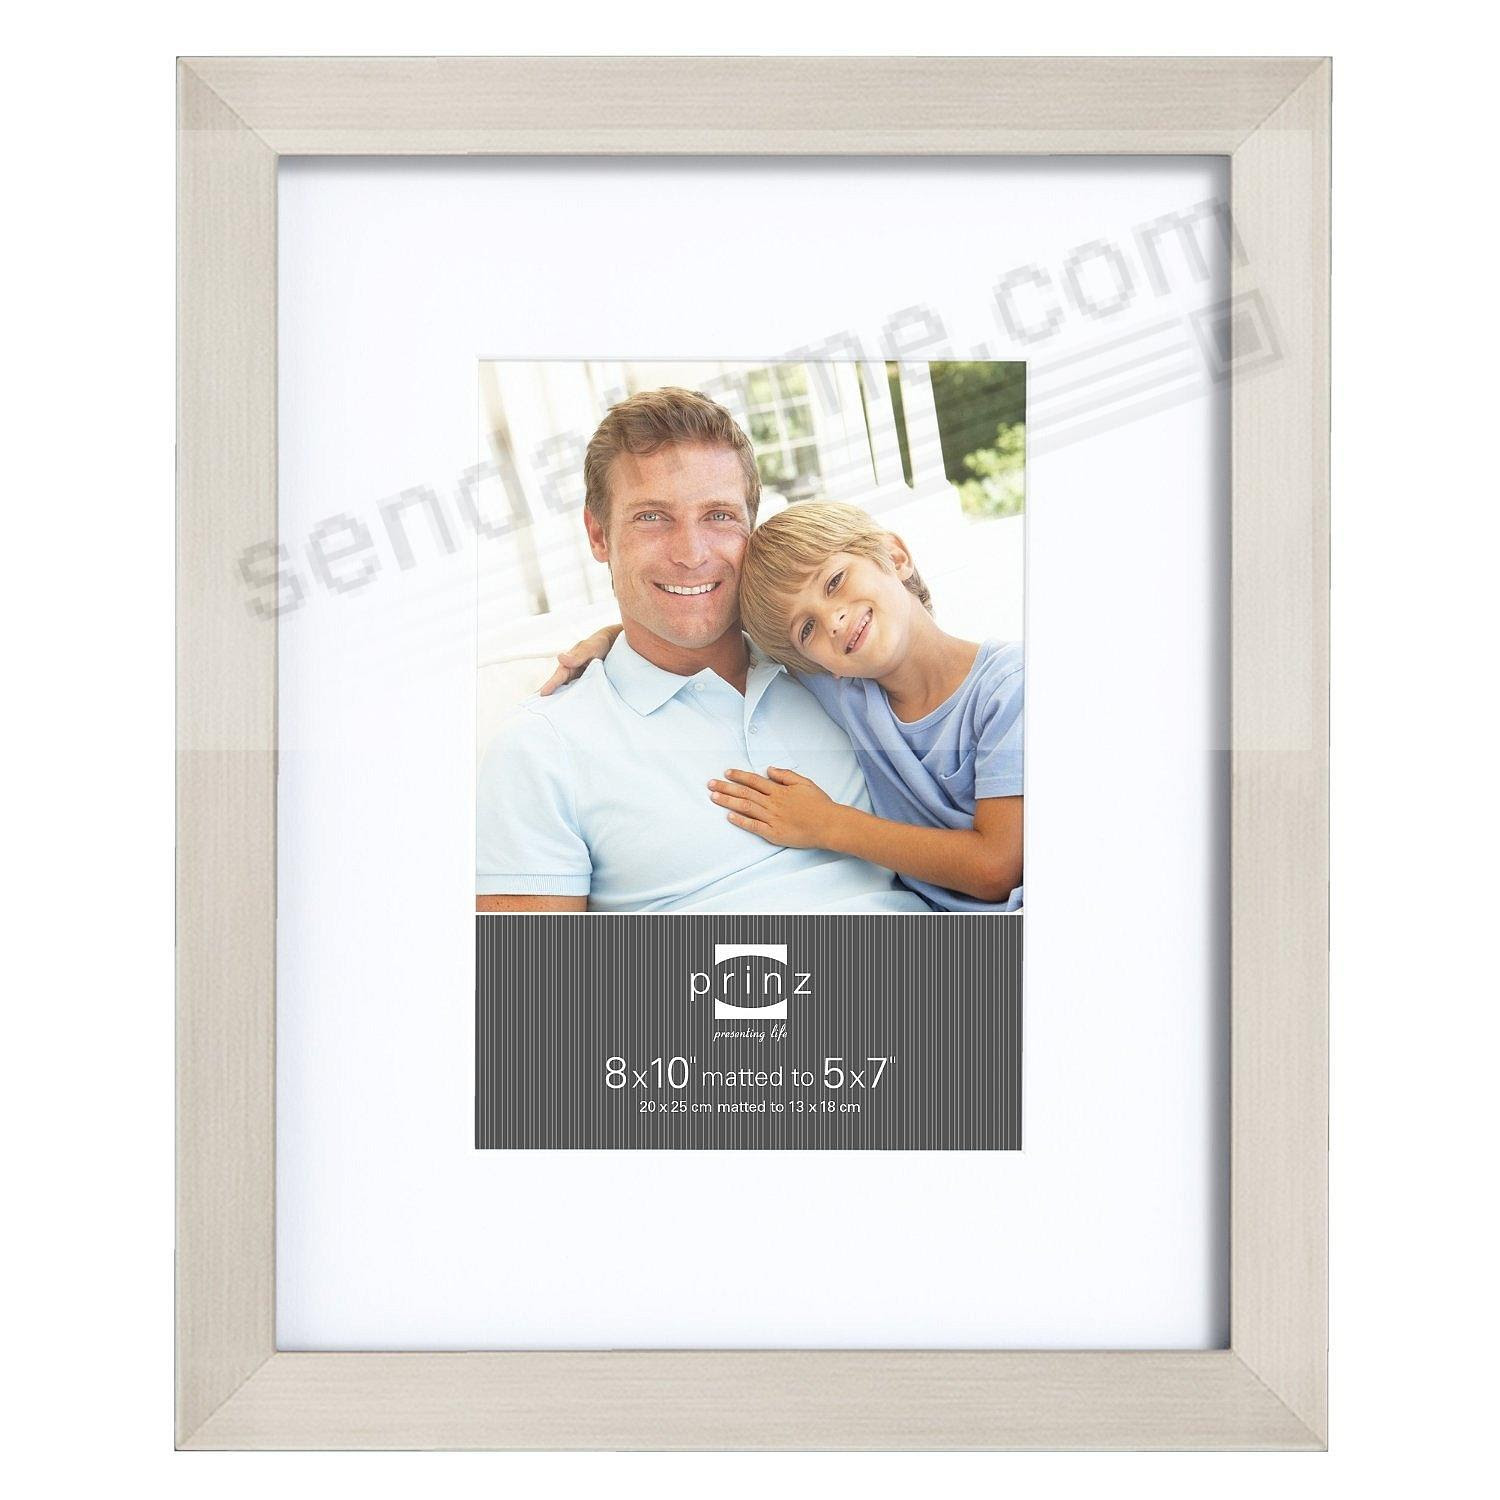 Gallery Expressions Nickel 8x105x7 Frame Wwhite Mat By Prinz